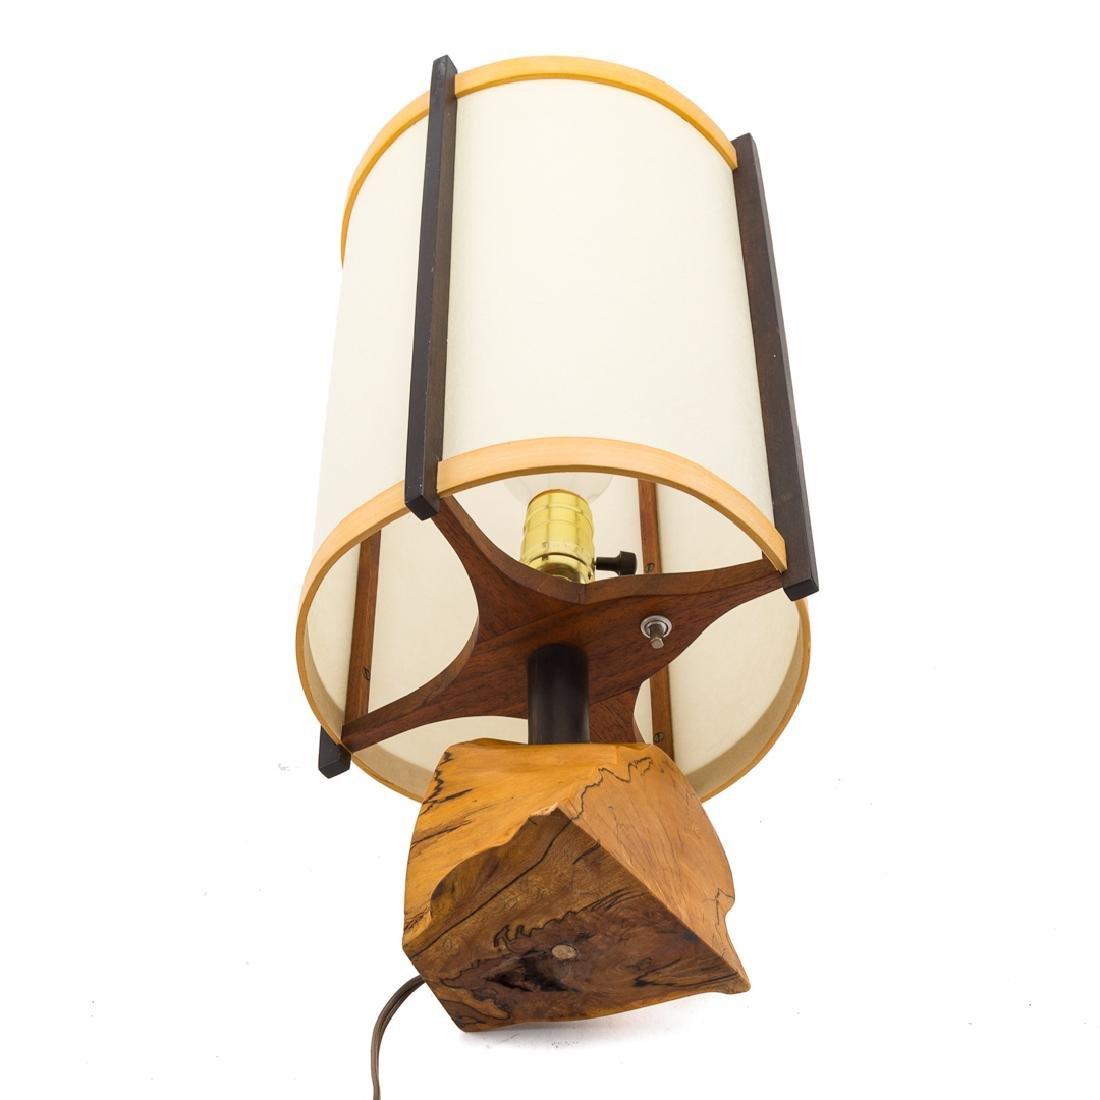 George Nakashima Desk Lamp - 5